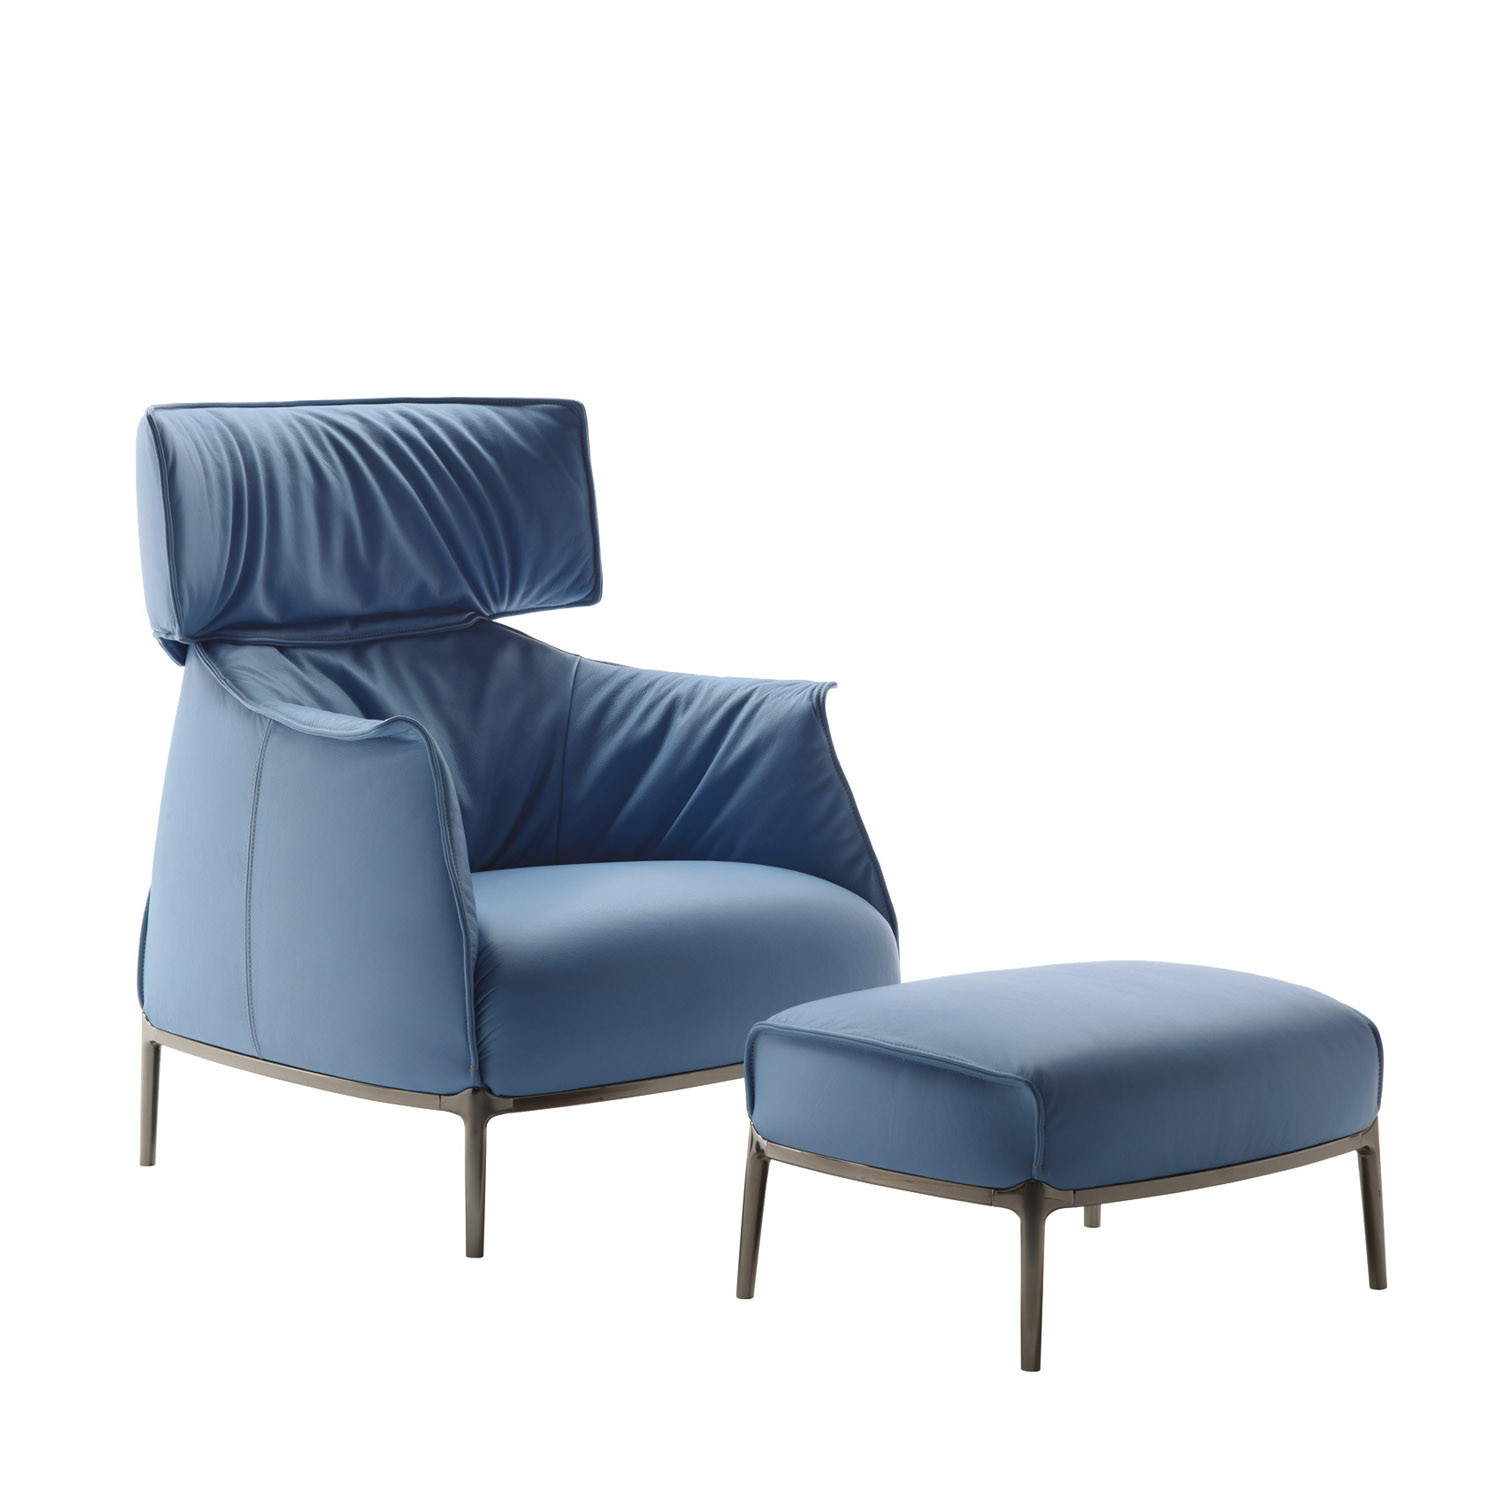 Archibald King Armchair with Footrest